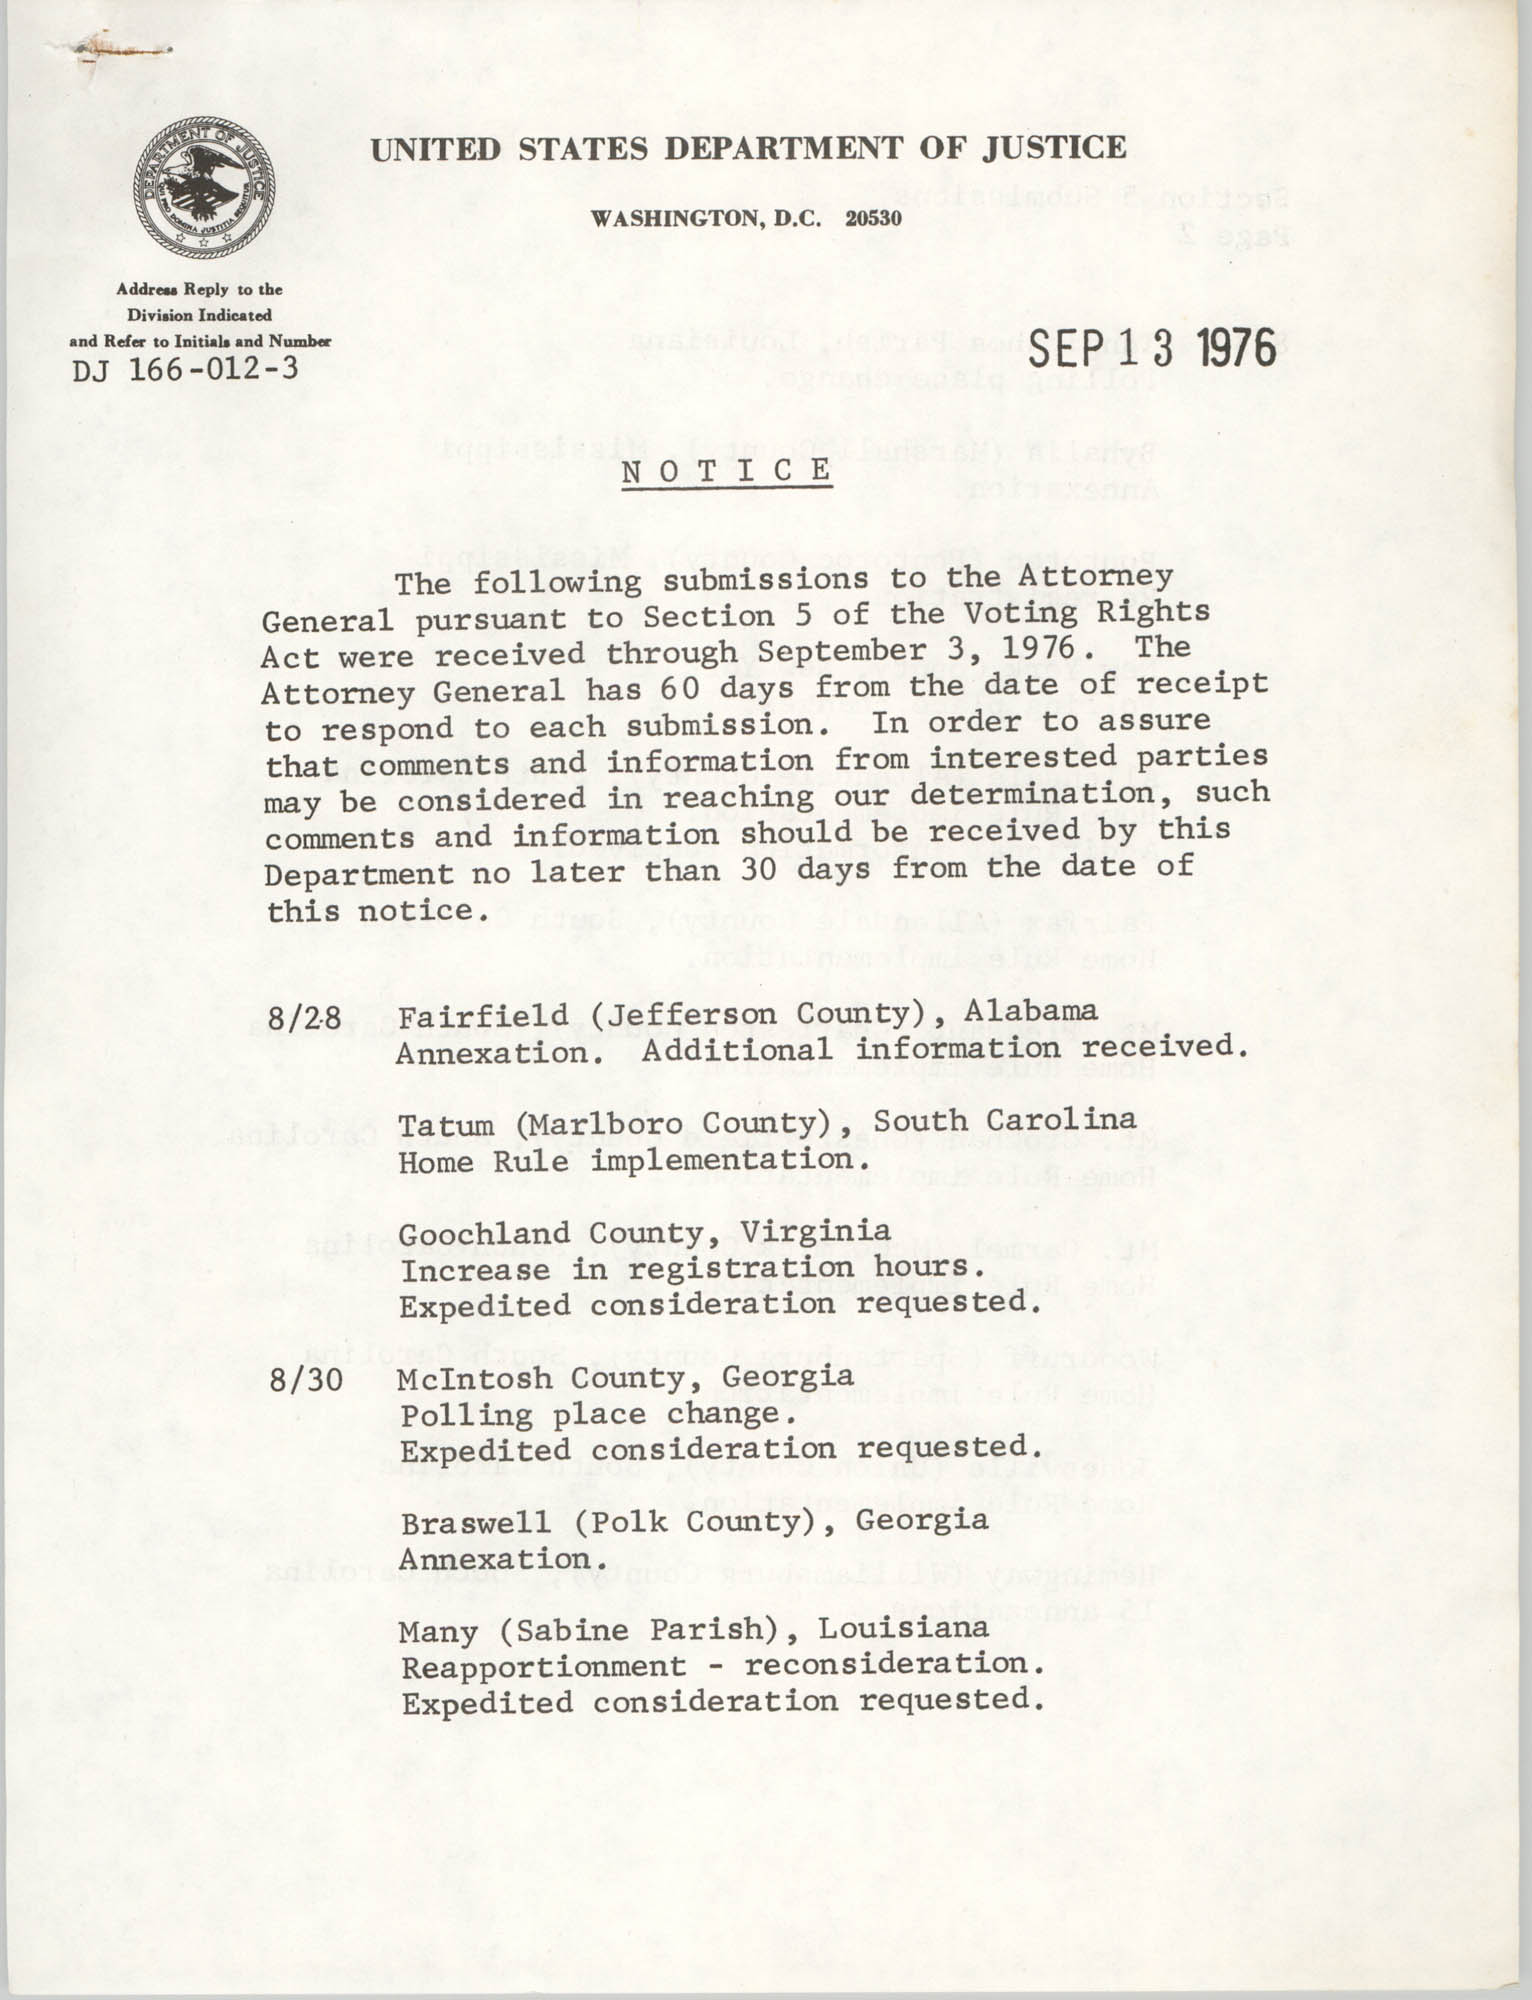 United States Department of Justice Notice, September 13, 1976